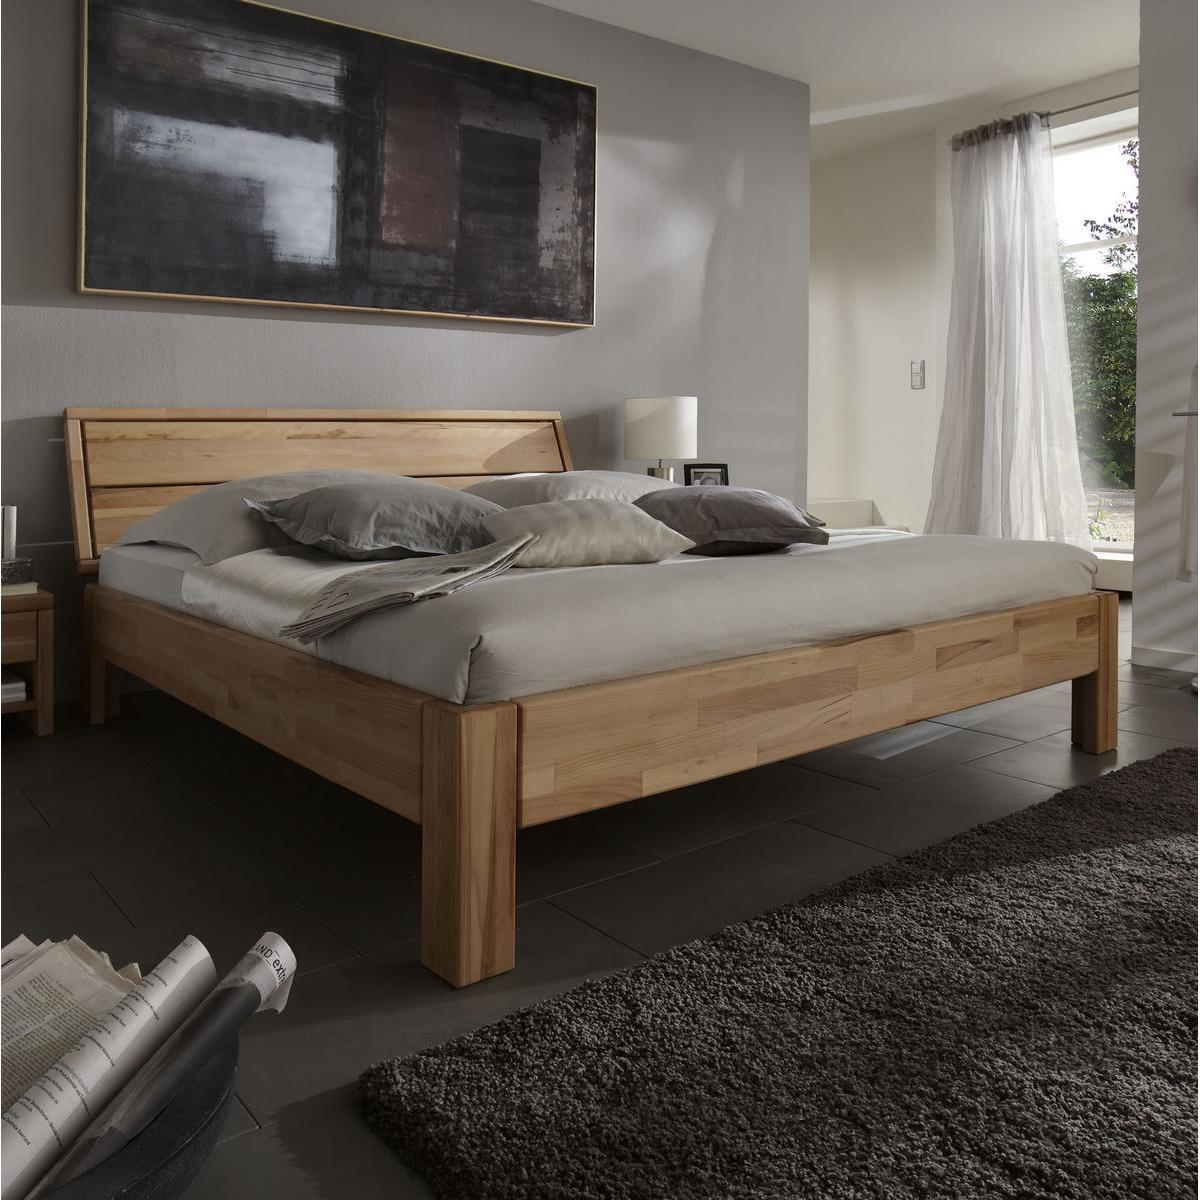 einzelbett 120x200 perfect holzbett x mit bettkasten polsterbett bett weis gebraucht poco. Black Bedroom Furniture Sets. Home Design Ideas